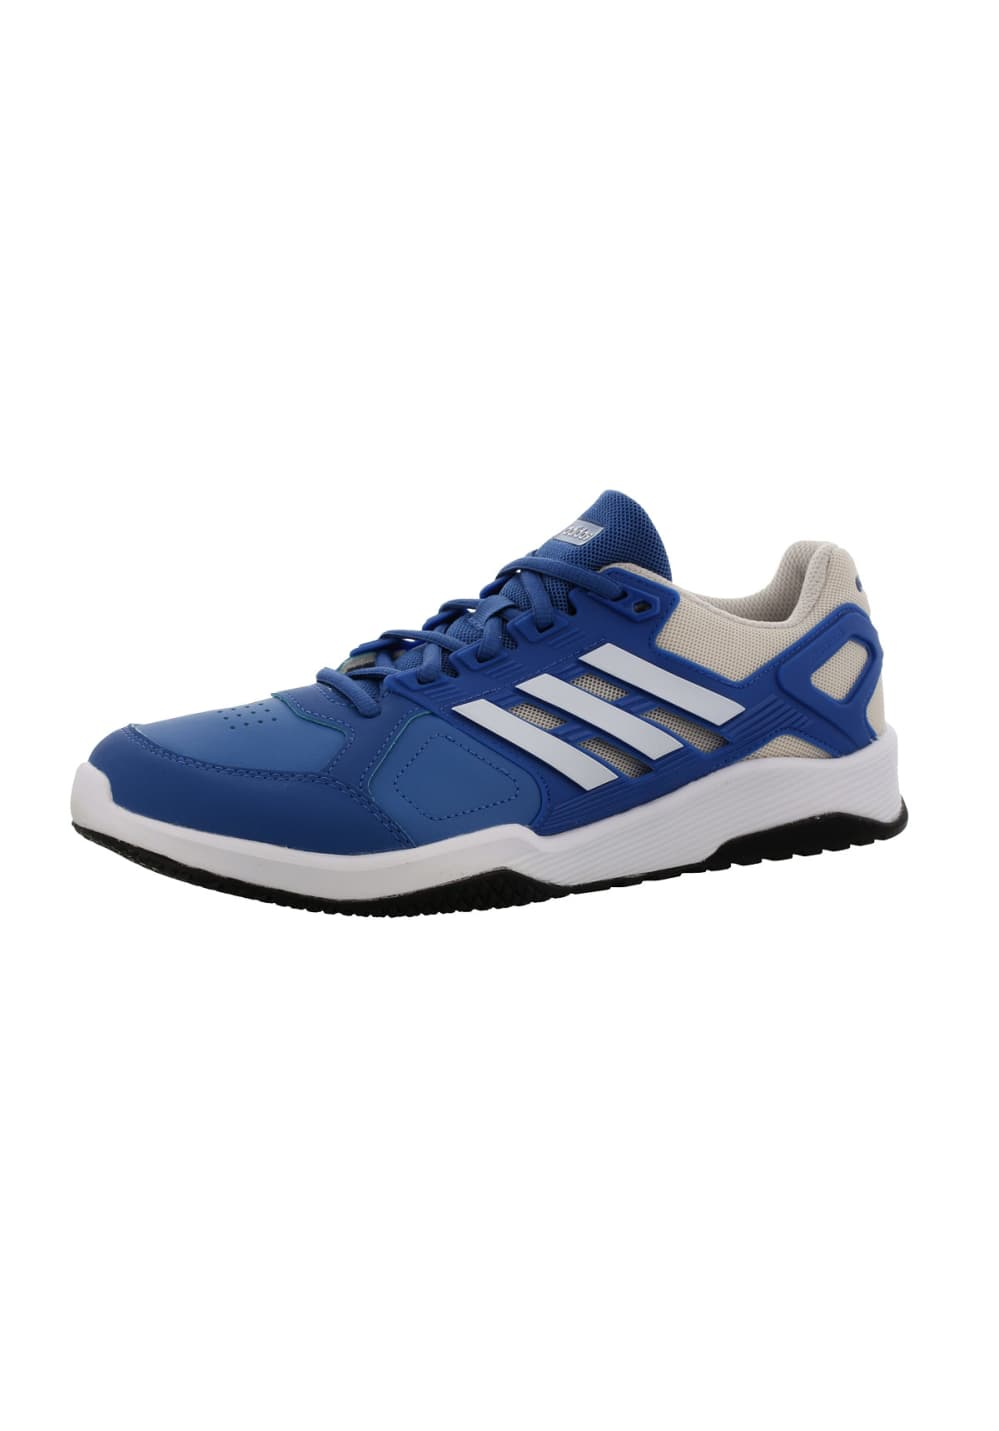 dff05854b adidas Duramo 8 Trainer - Fitness shoes for Men - Blue